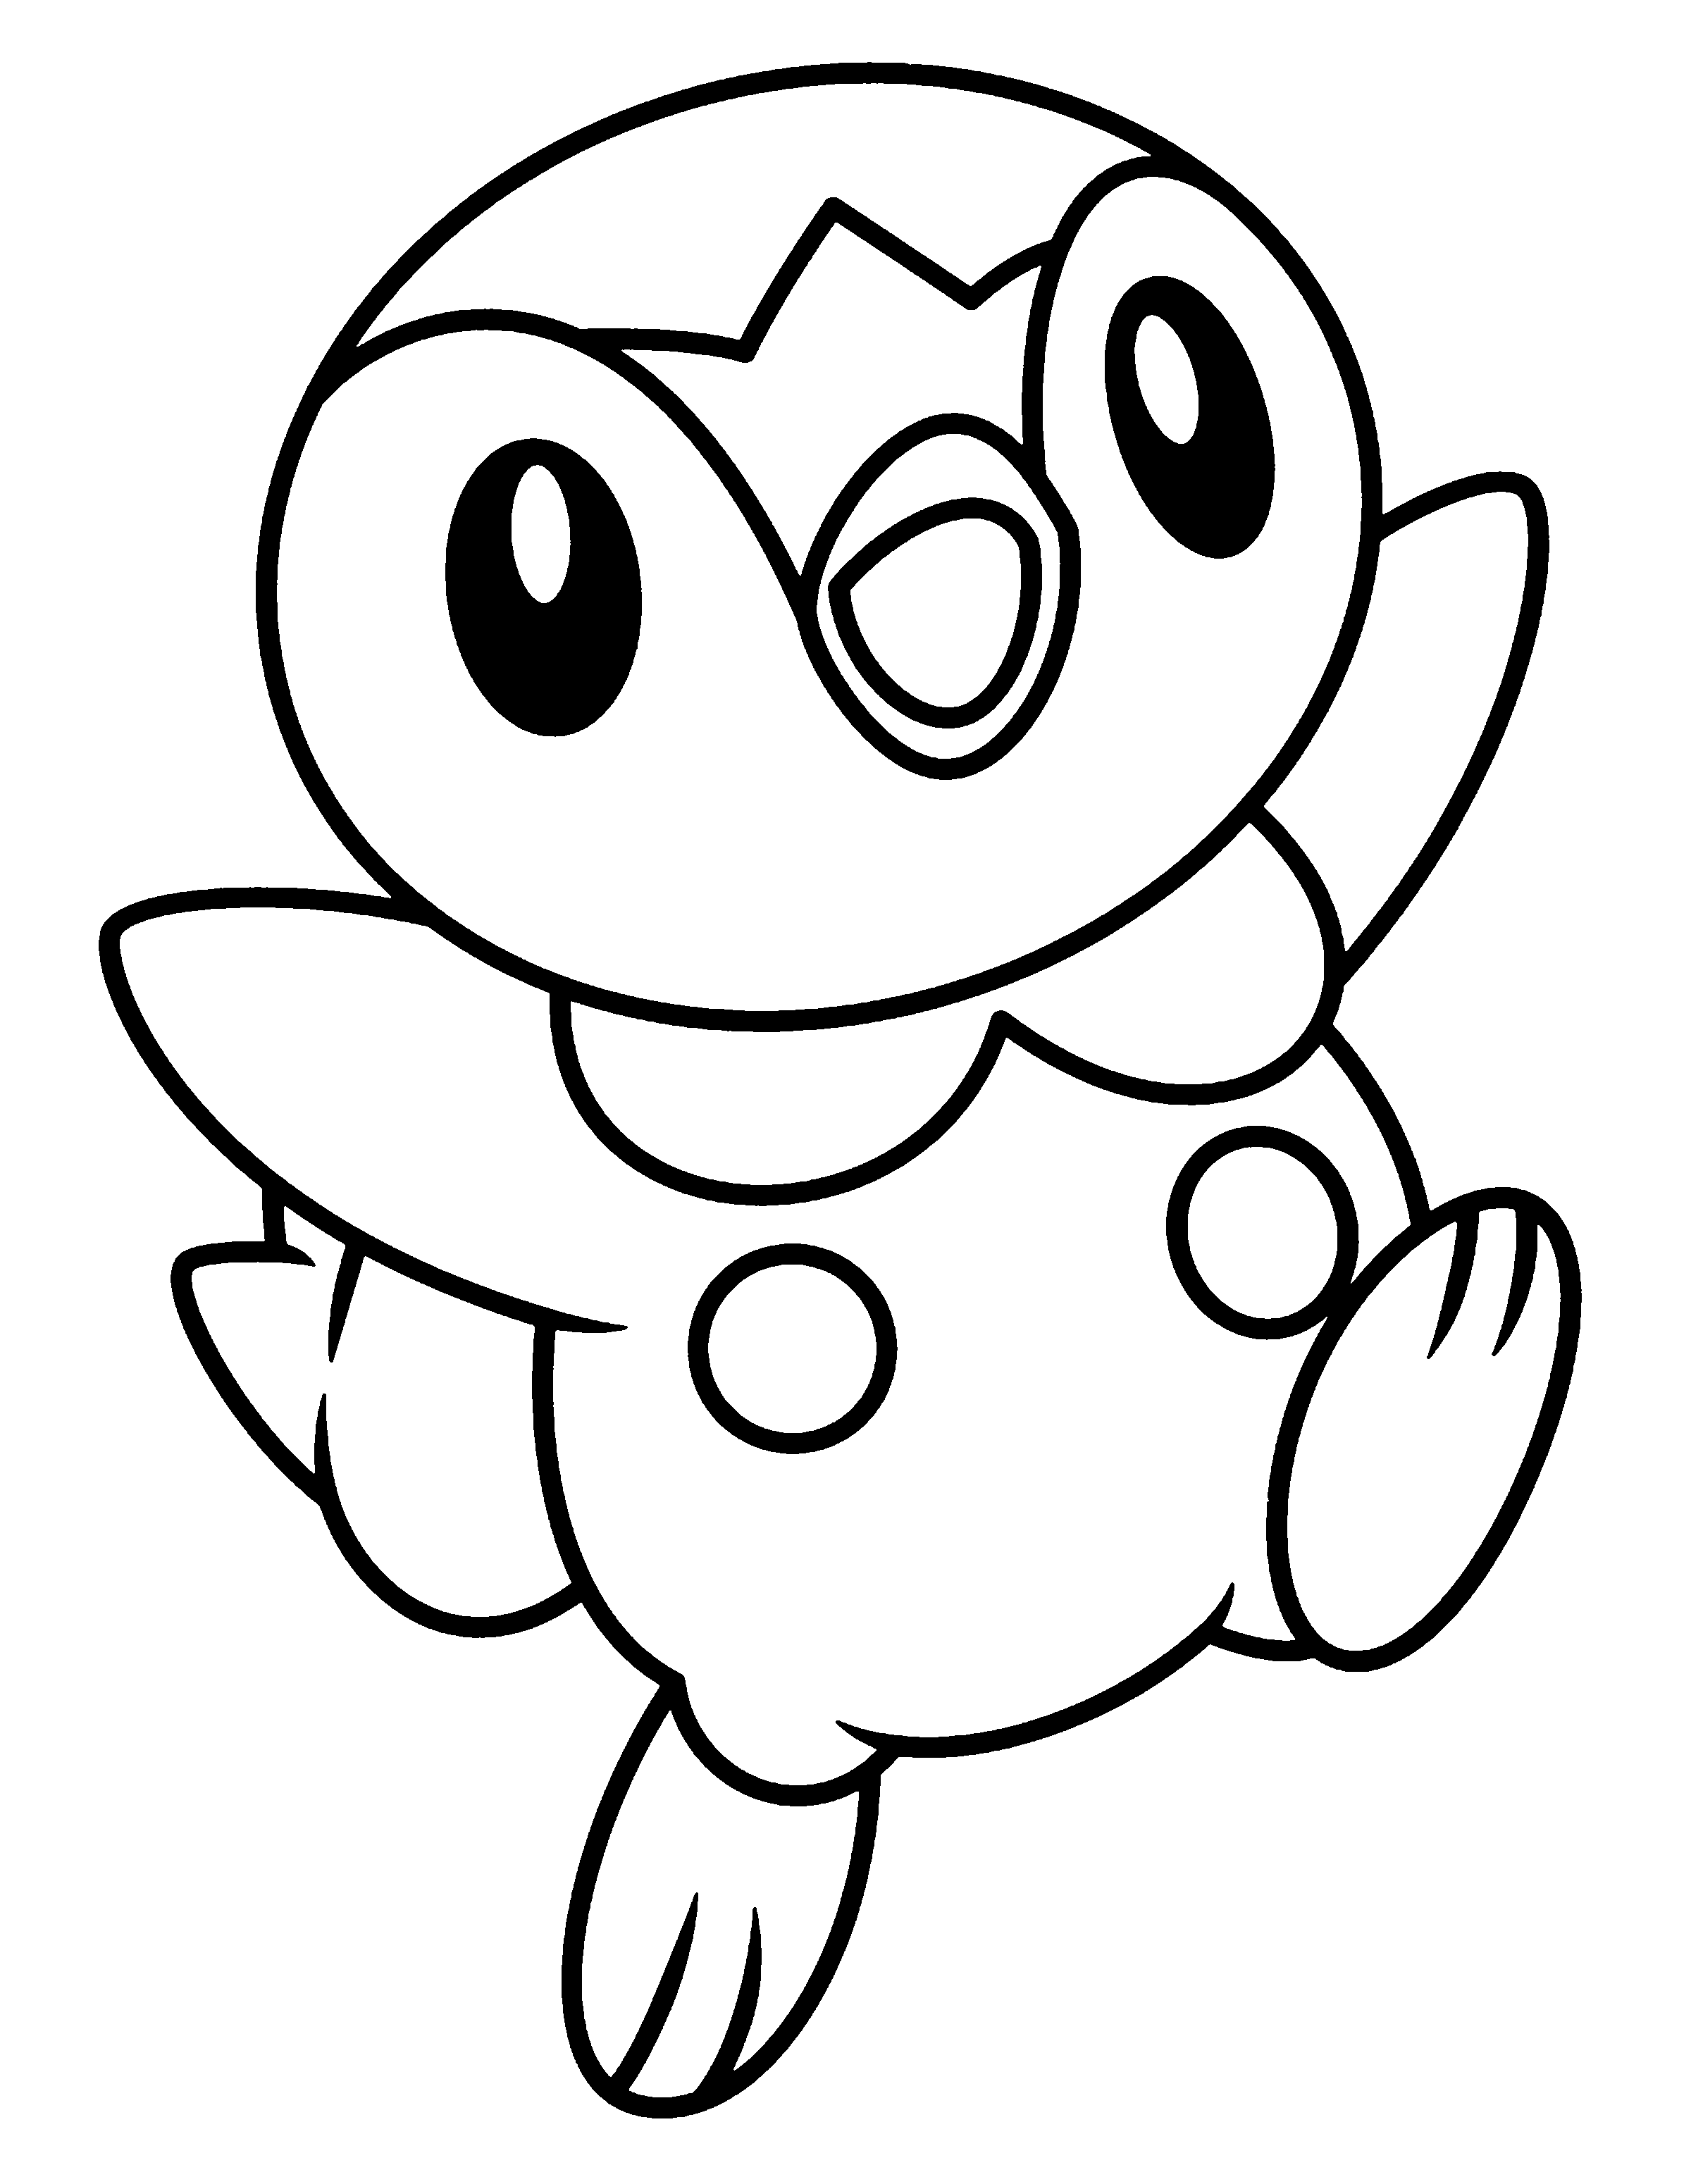 Pokemon coloring pages pancham - 17 Best Images About Coloring Pages Pokemon On Pinterest Coloring Pikachu And Pokemon 17 Best Images About Coloring Pages Pokemon On Pinterest